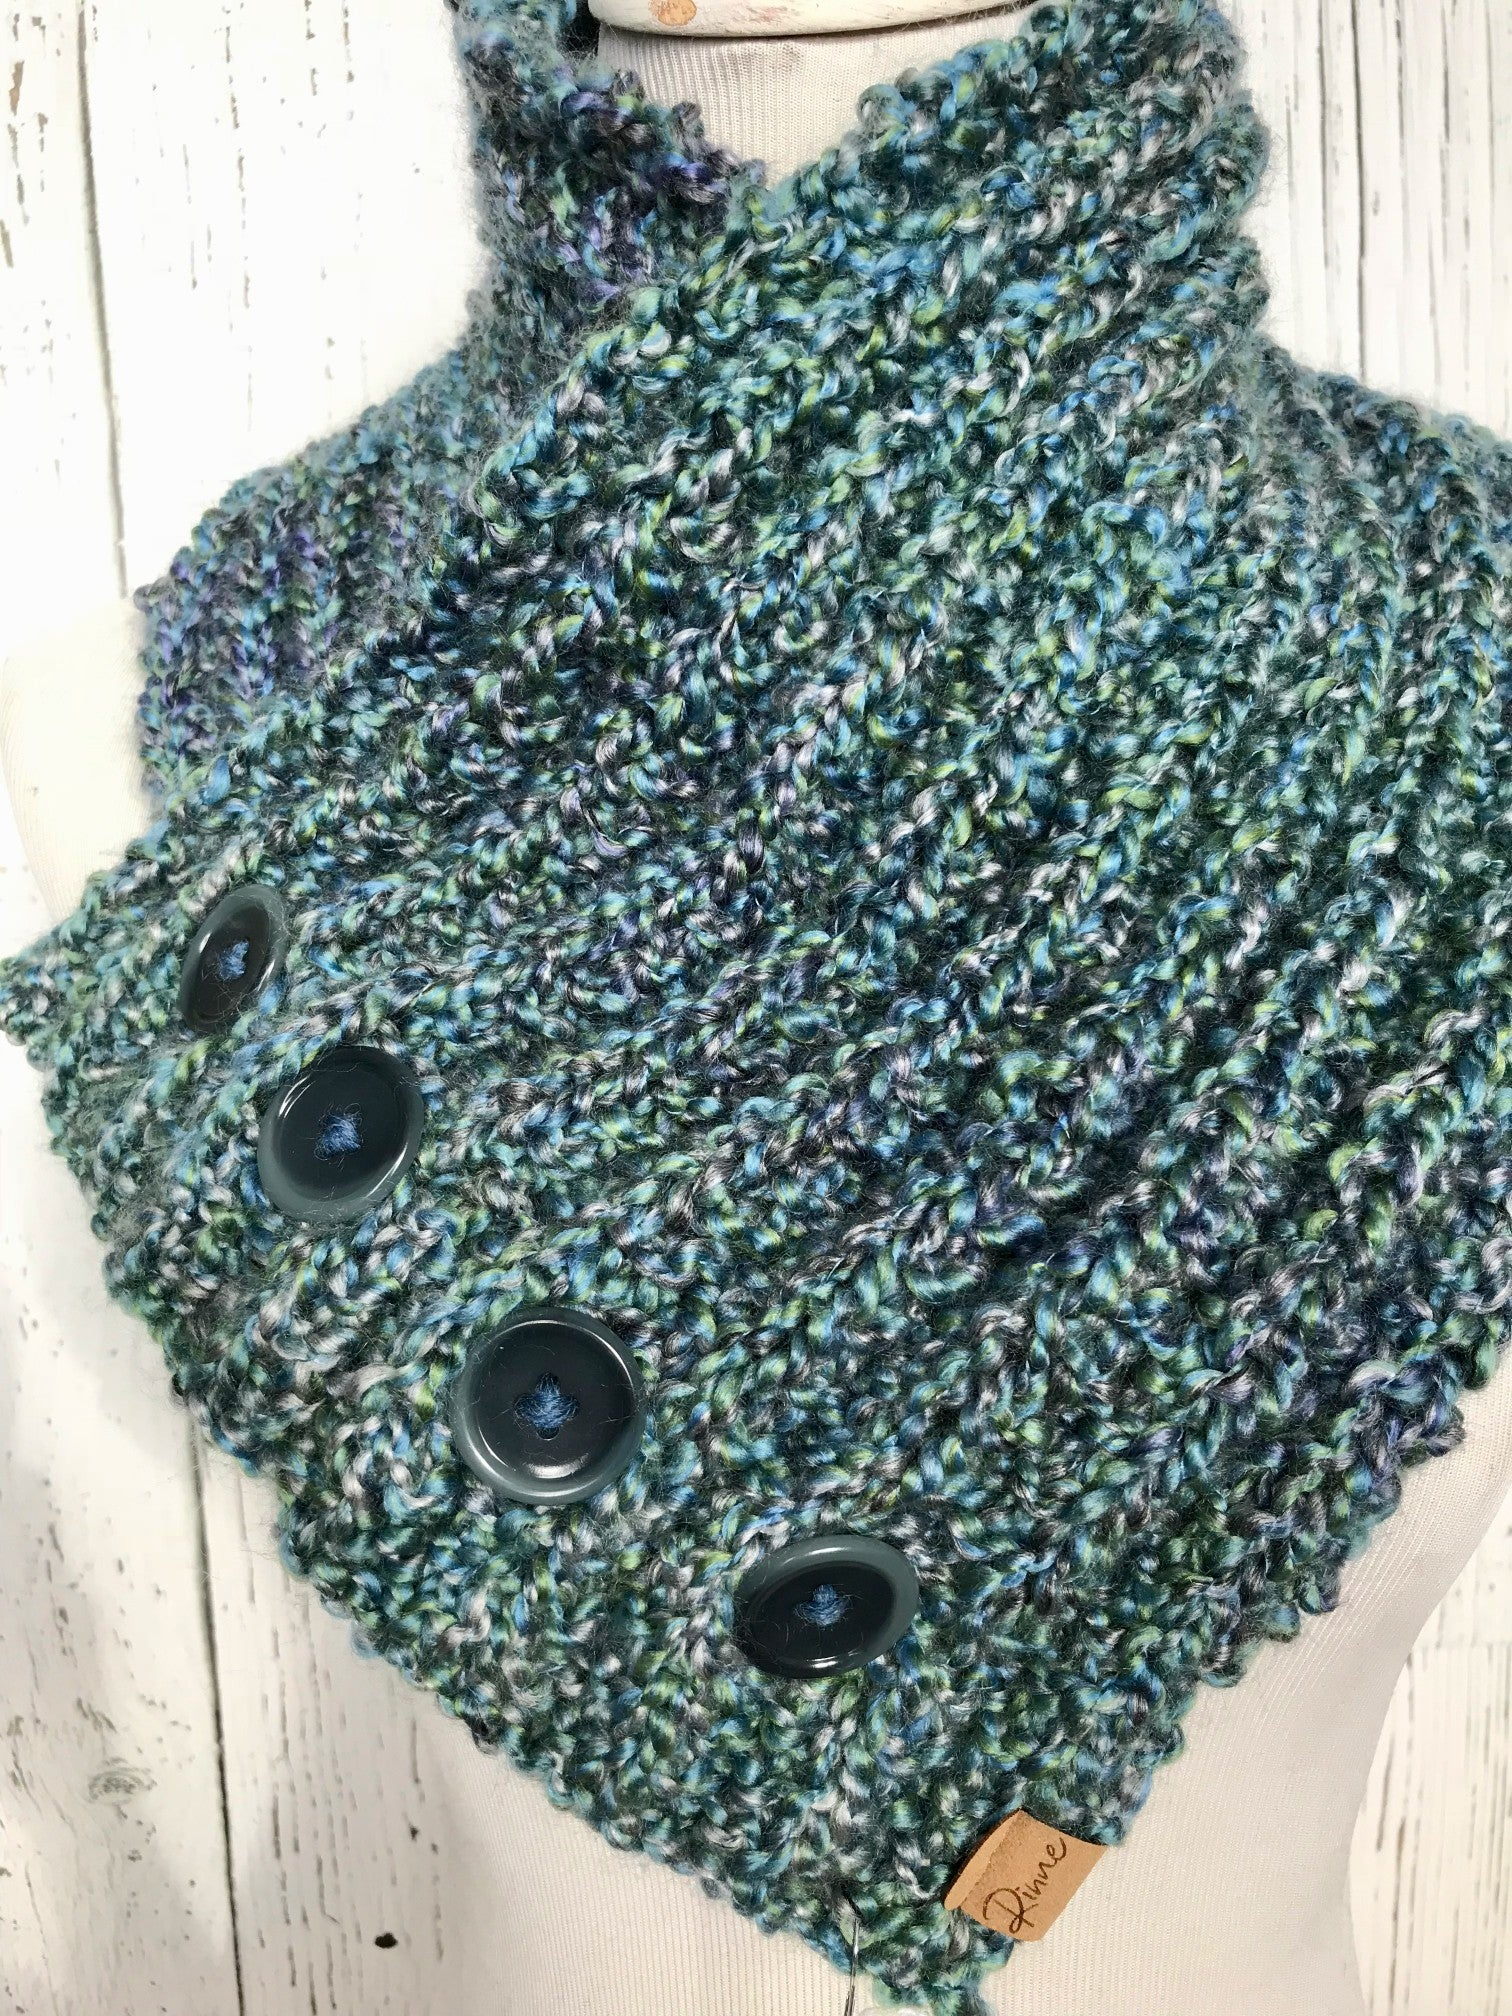 Classic Knit Button Cowl in blues and greens with dark teal buttons